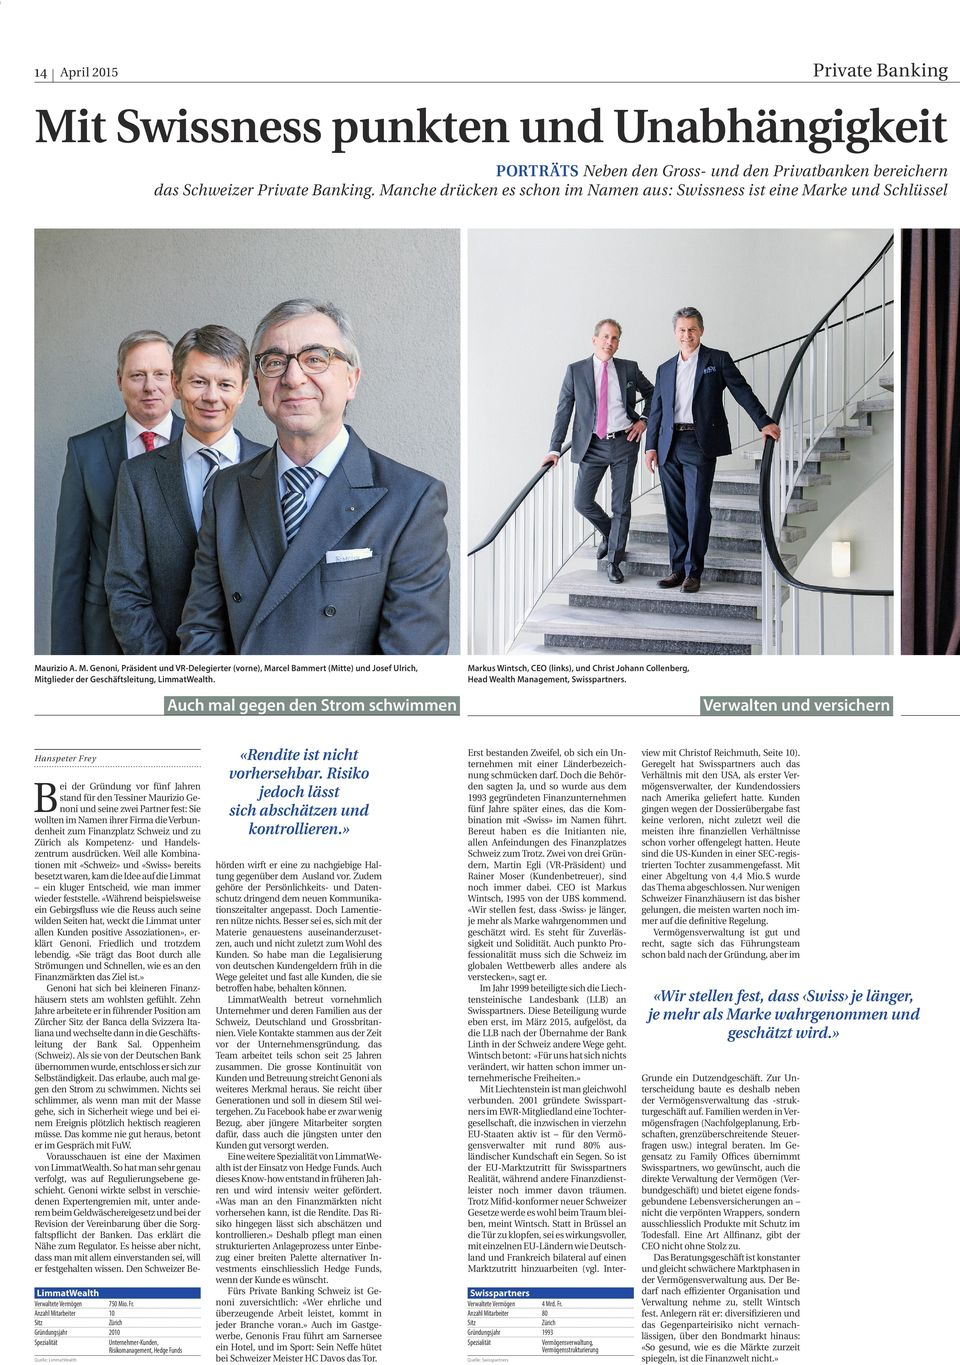 Markus Wintsch, CEO (links), und Christ Johann Collenberg, Head Wealth Management, Swisspartners.